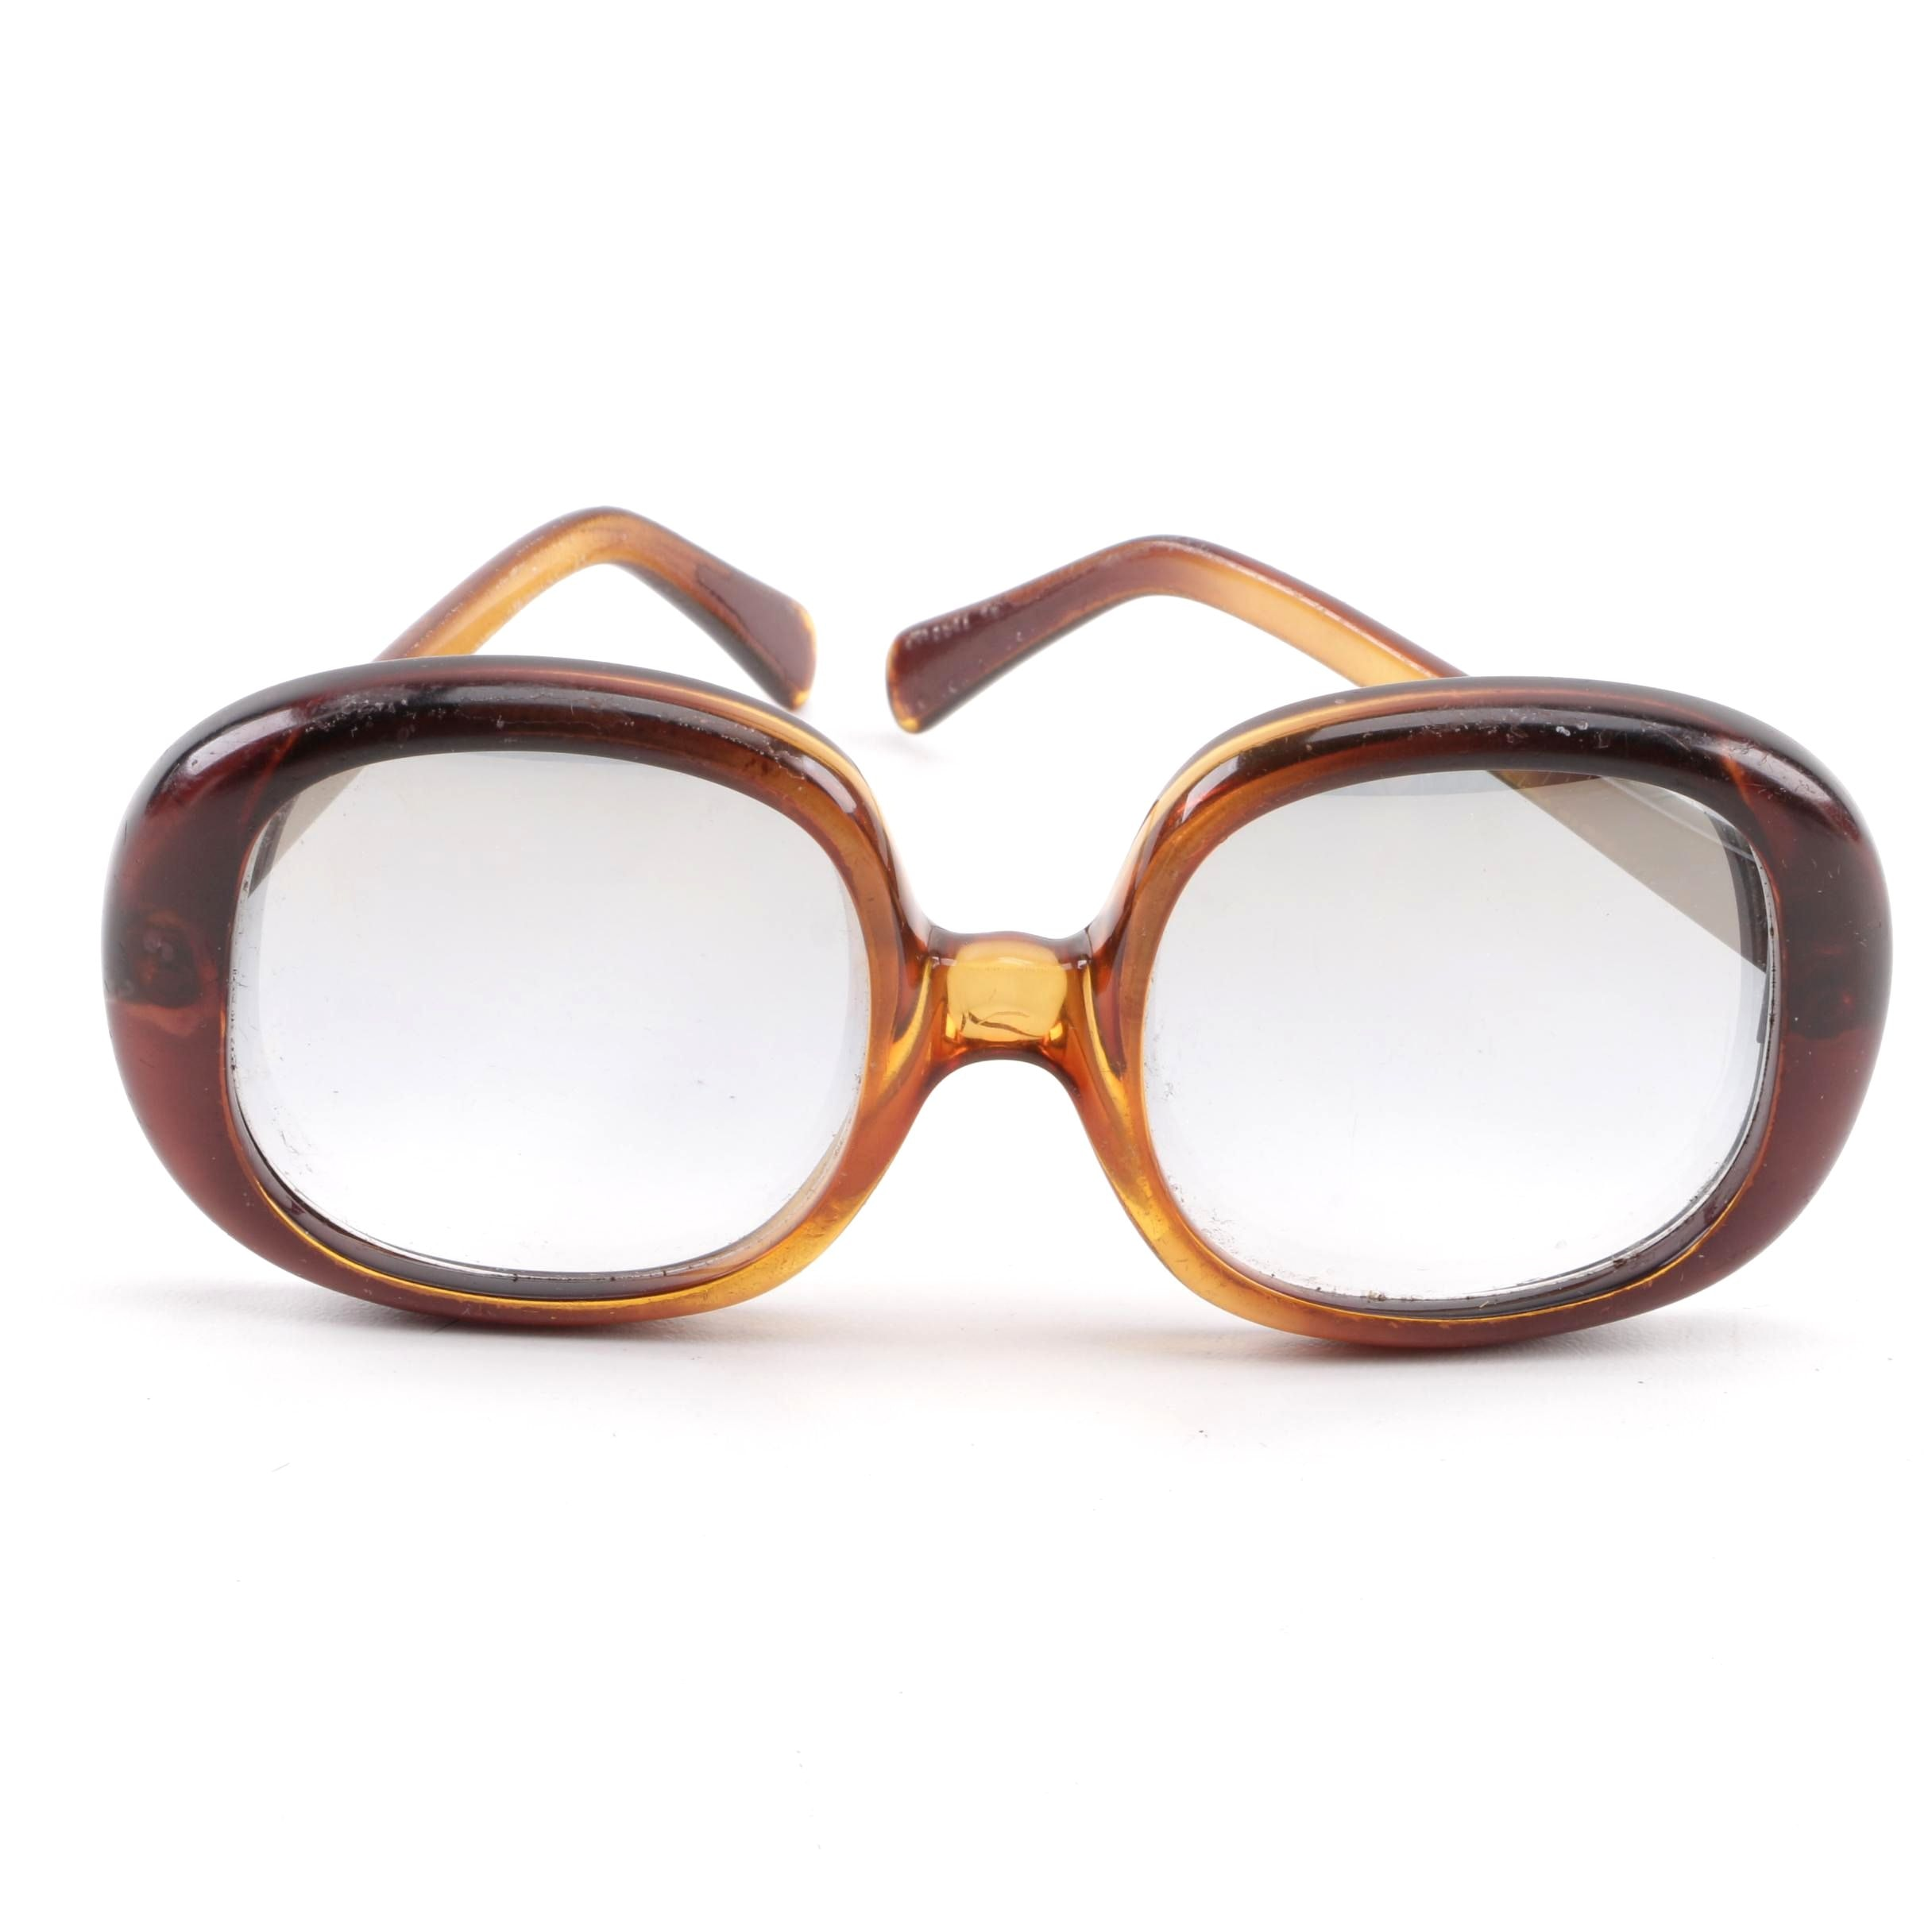 Vintage Christian Dior Brown and Amber Sunglasses